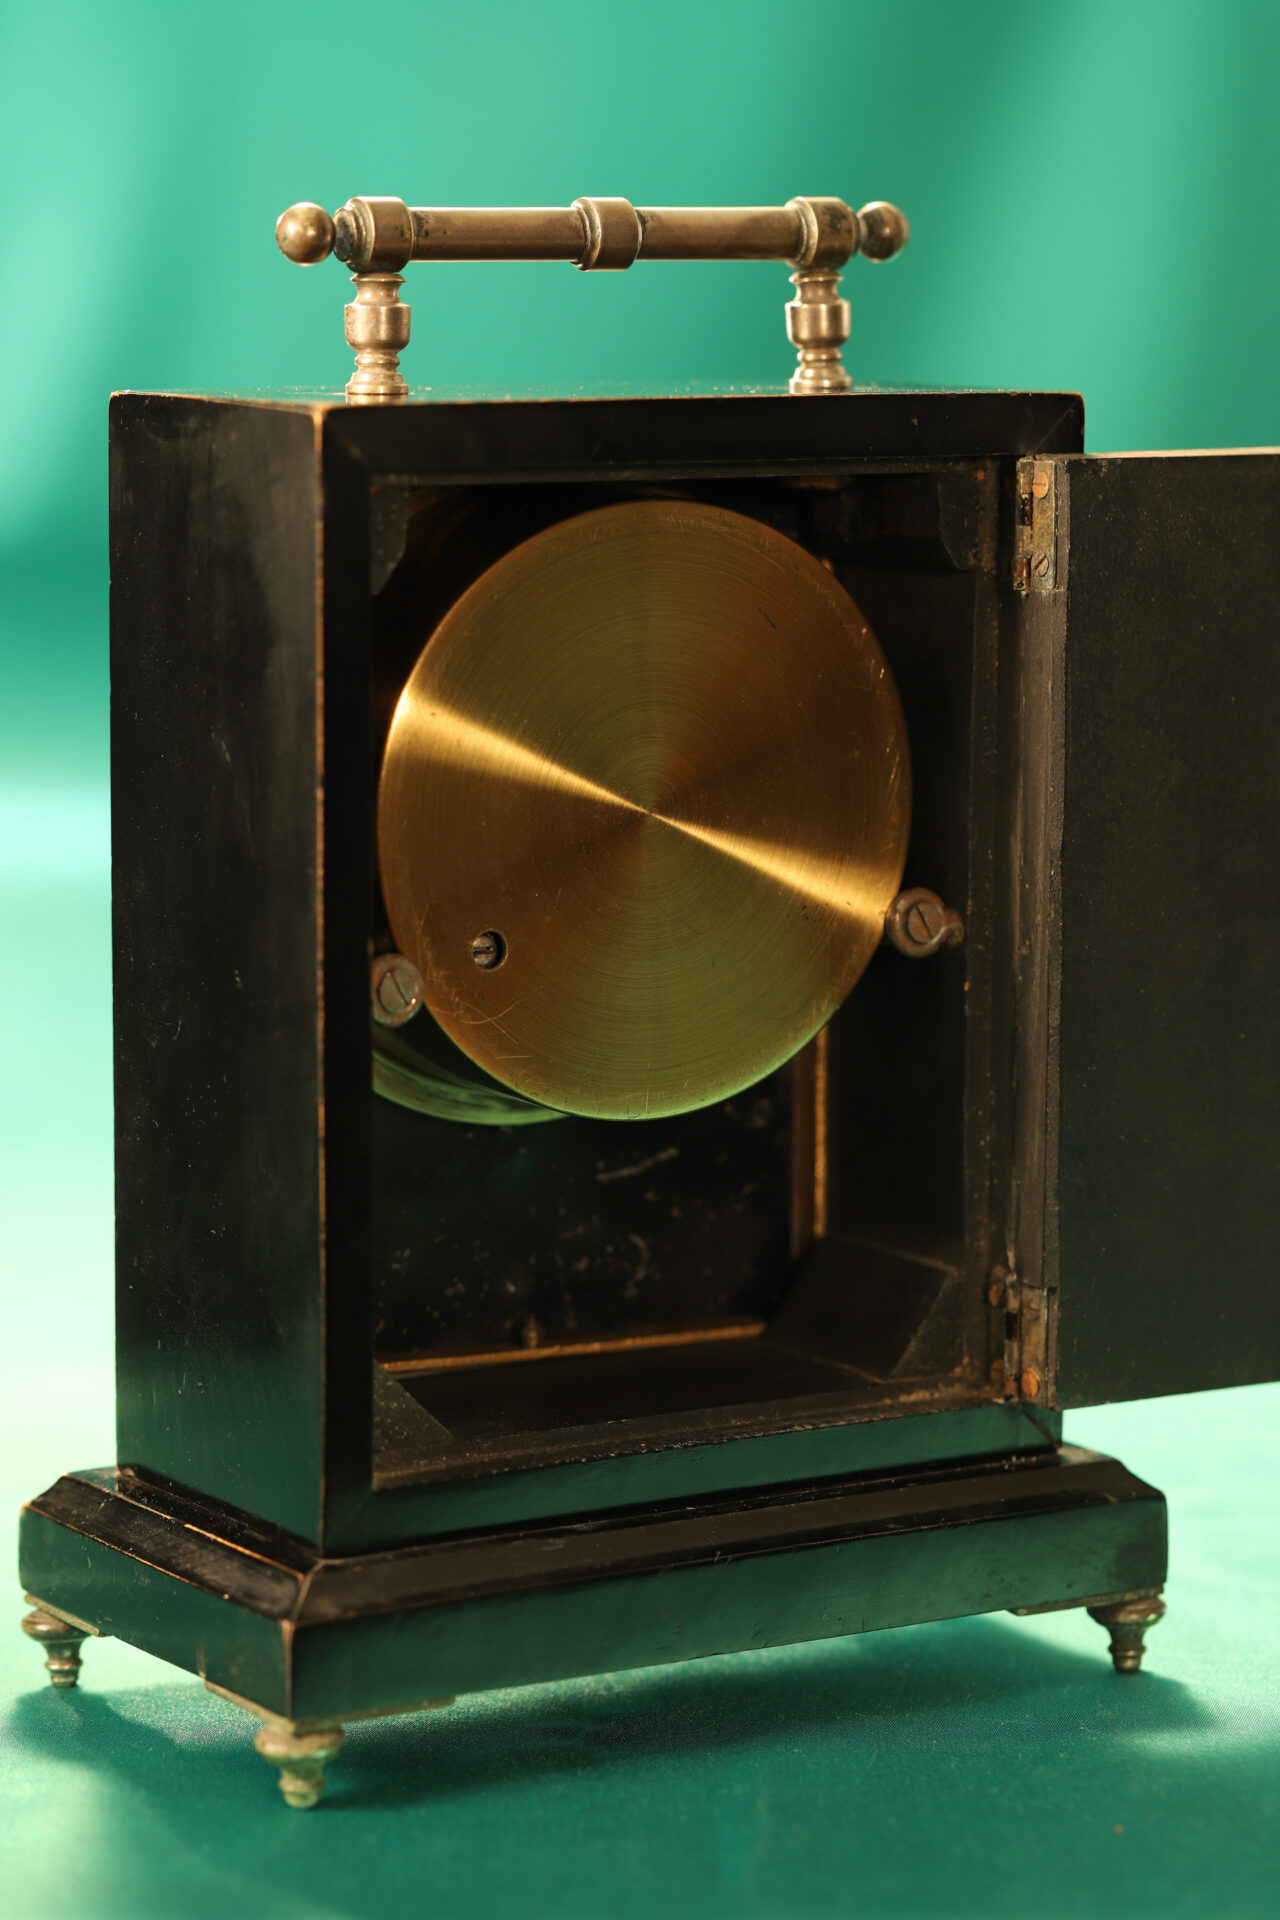 Image of reverse of Ebonised Recording Aneroid Barometer or Barograph c1878 with access door open taken from lefthand side